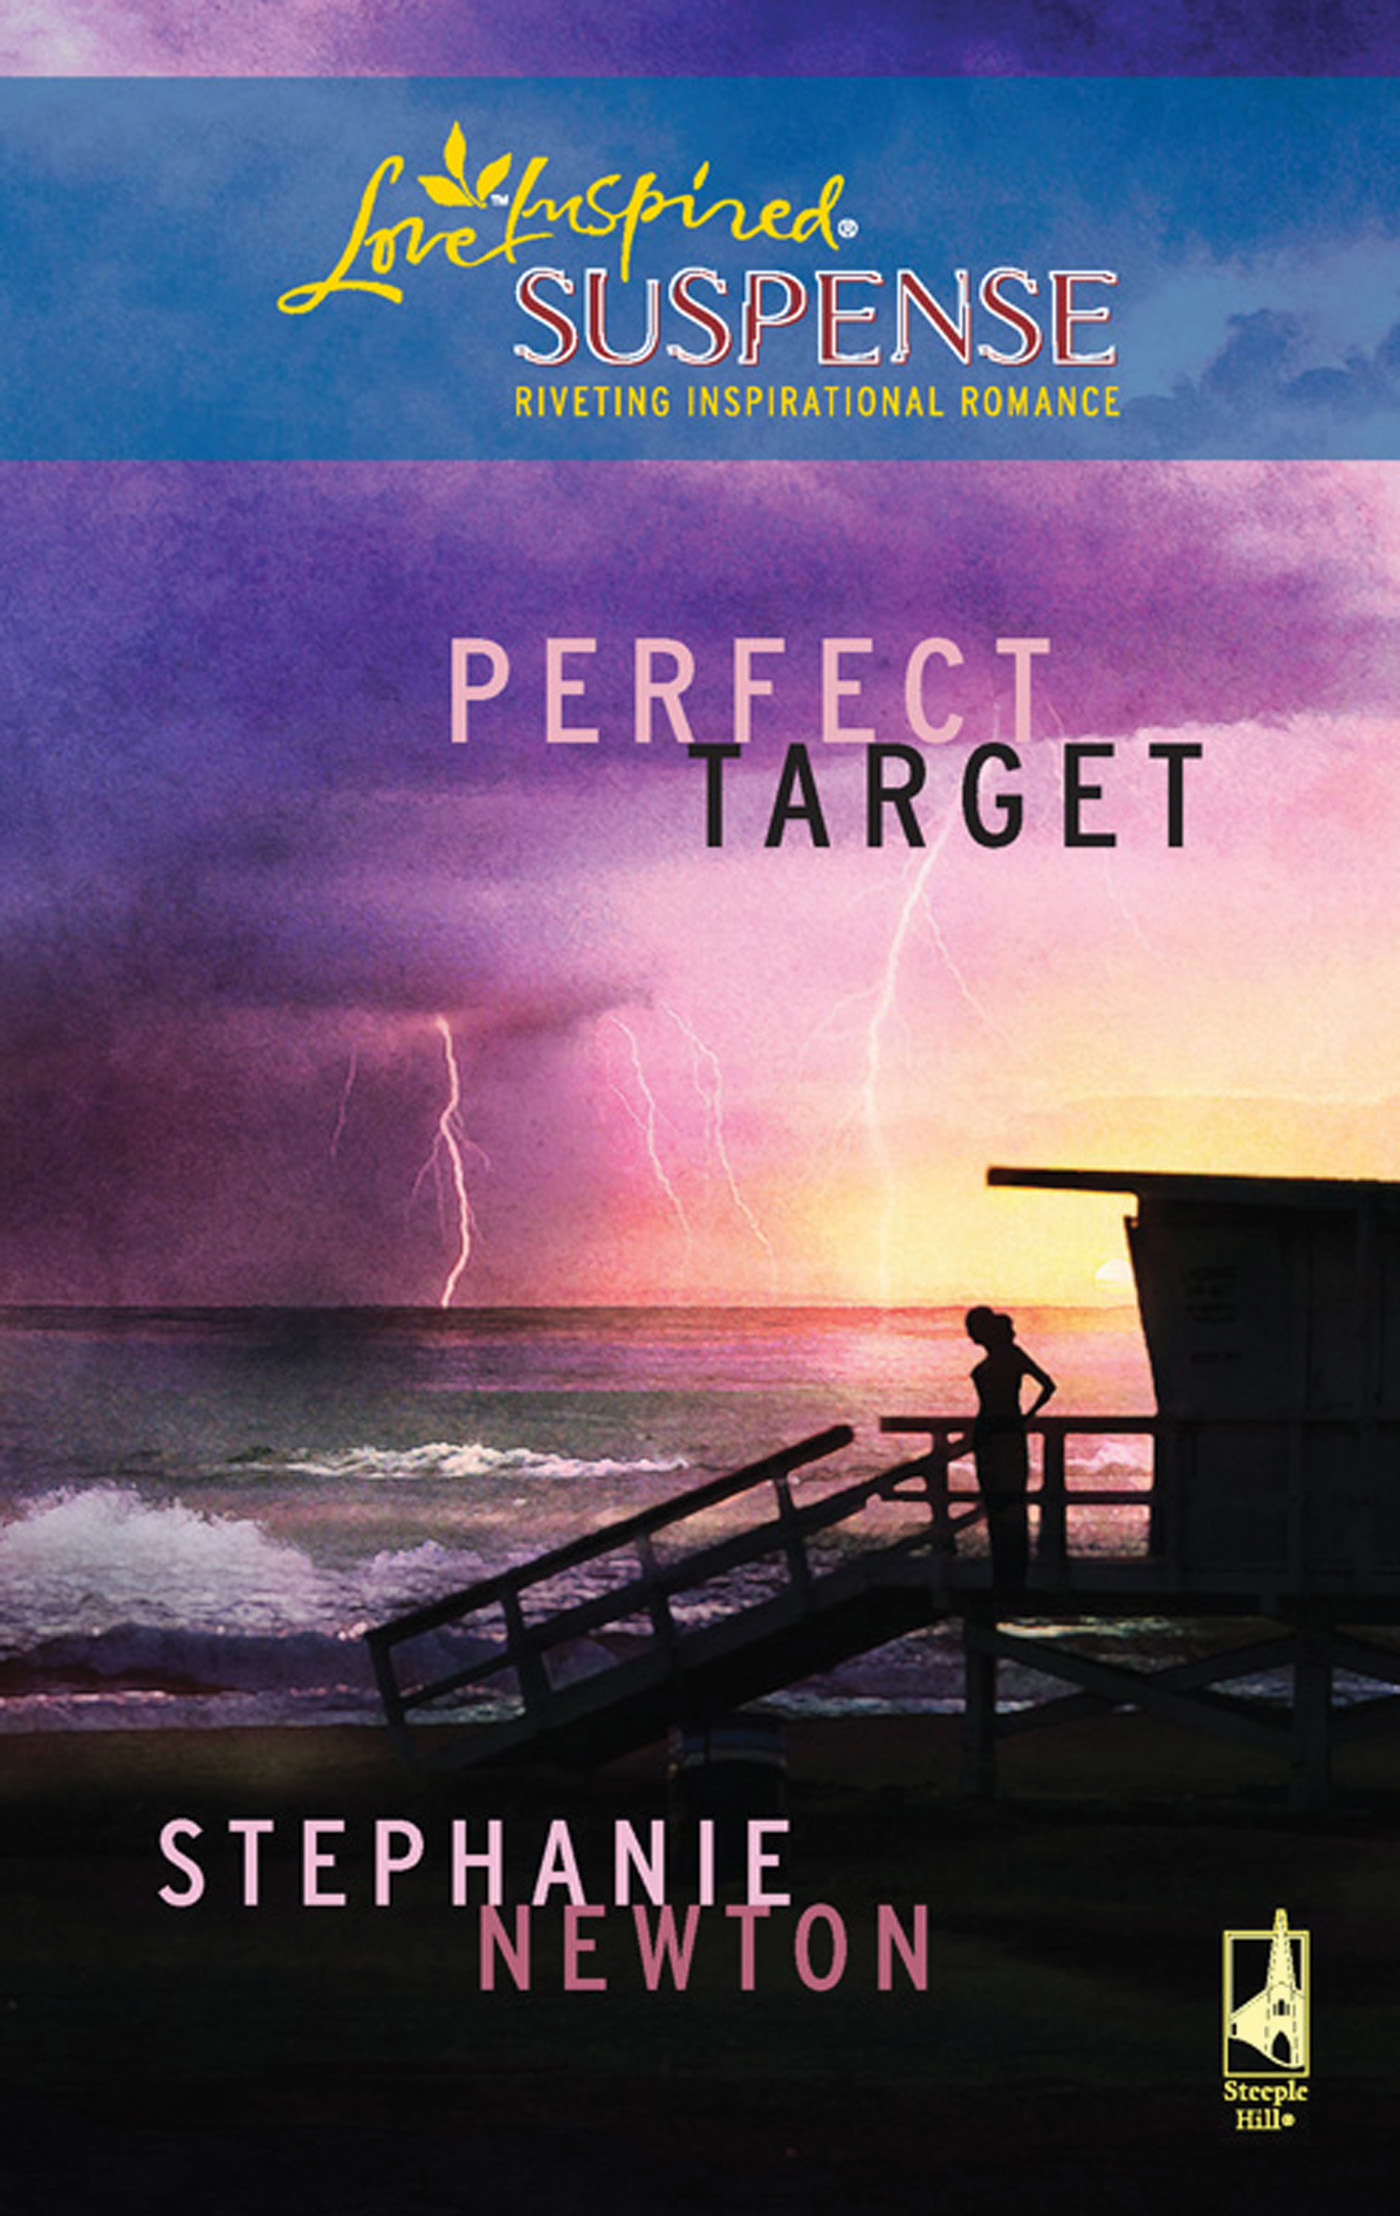 Perfect Target (Mills & Boon Love Inspired Suspense) (Emerald Coast 911 - Book 1)